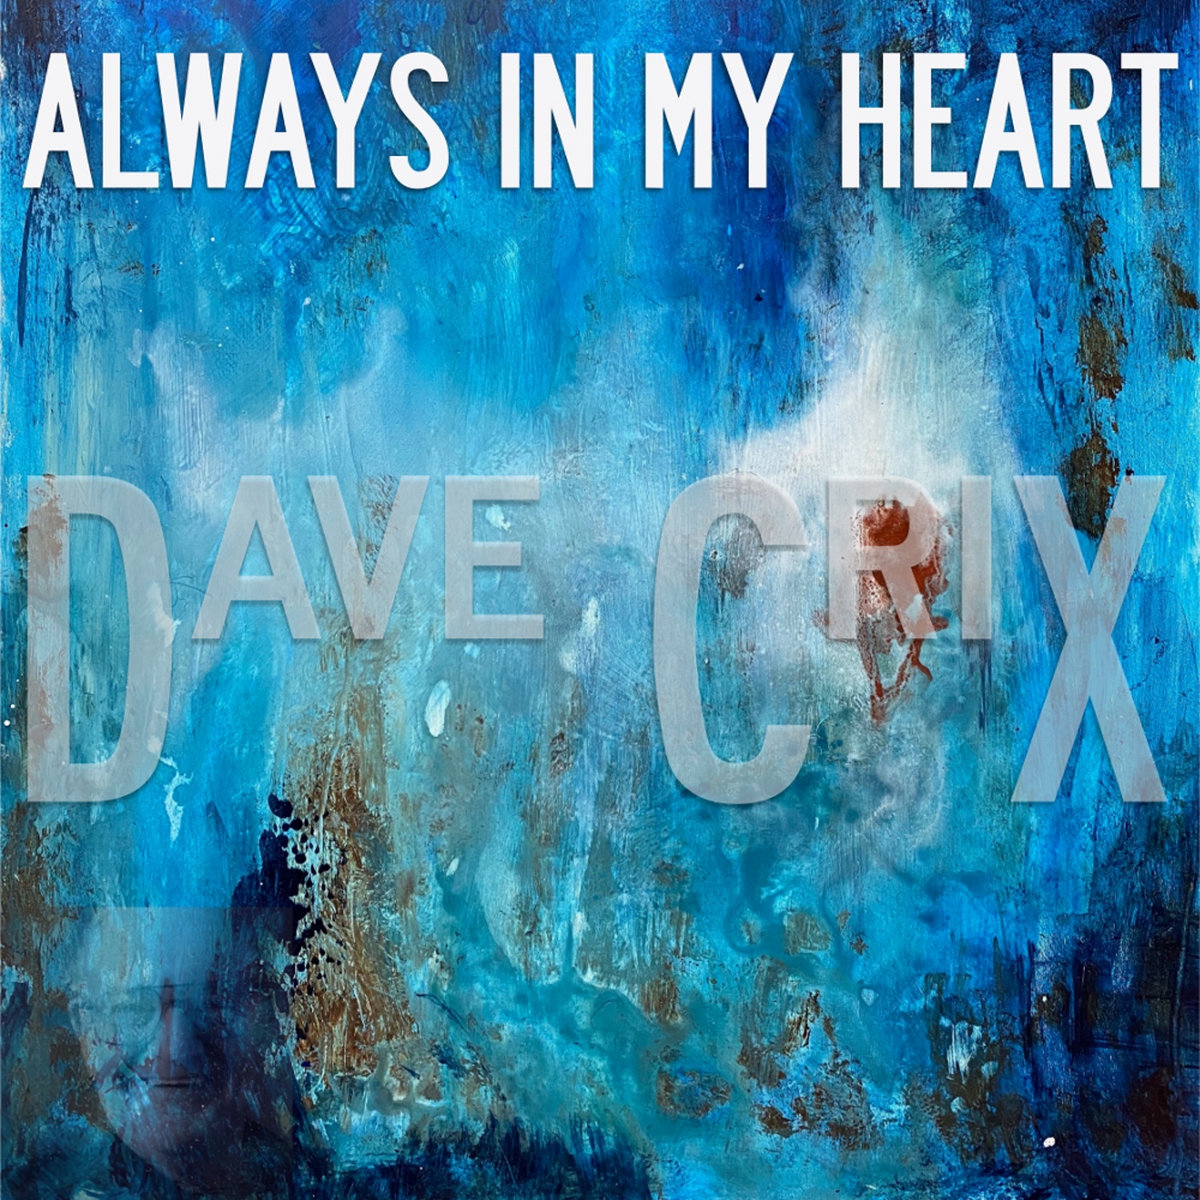 Always In My Heart by Dave Crix